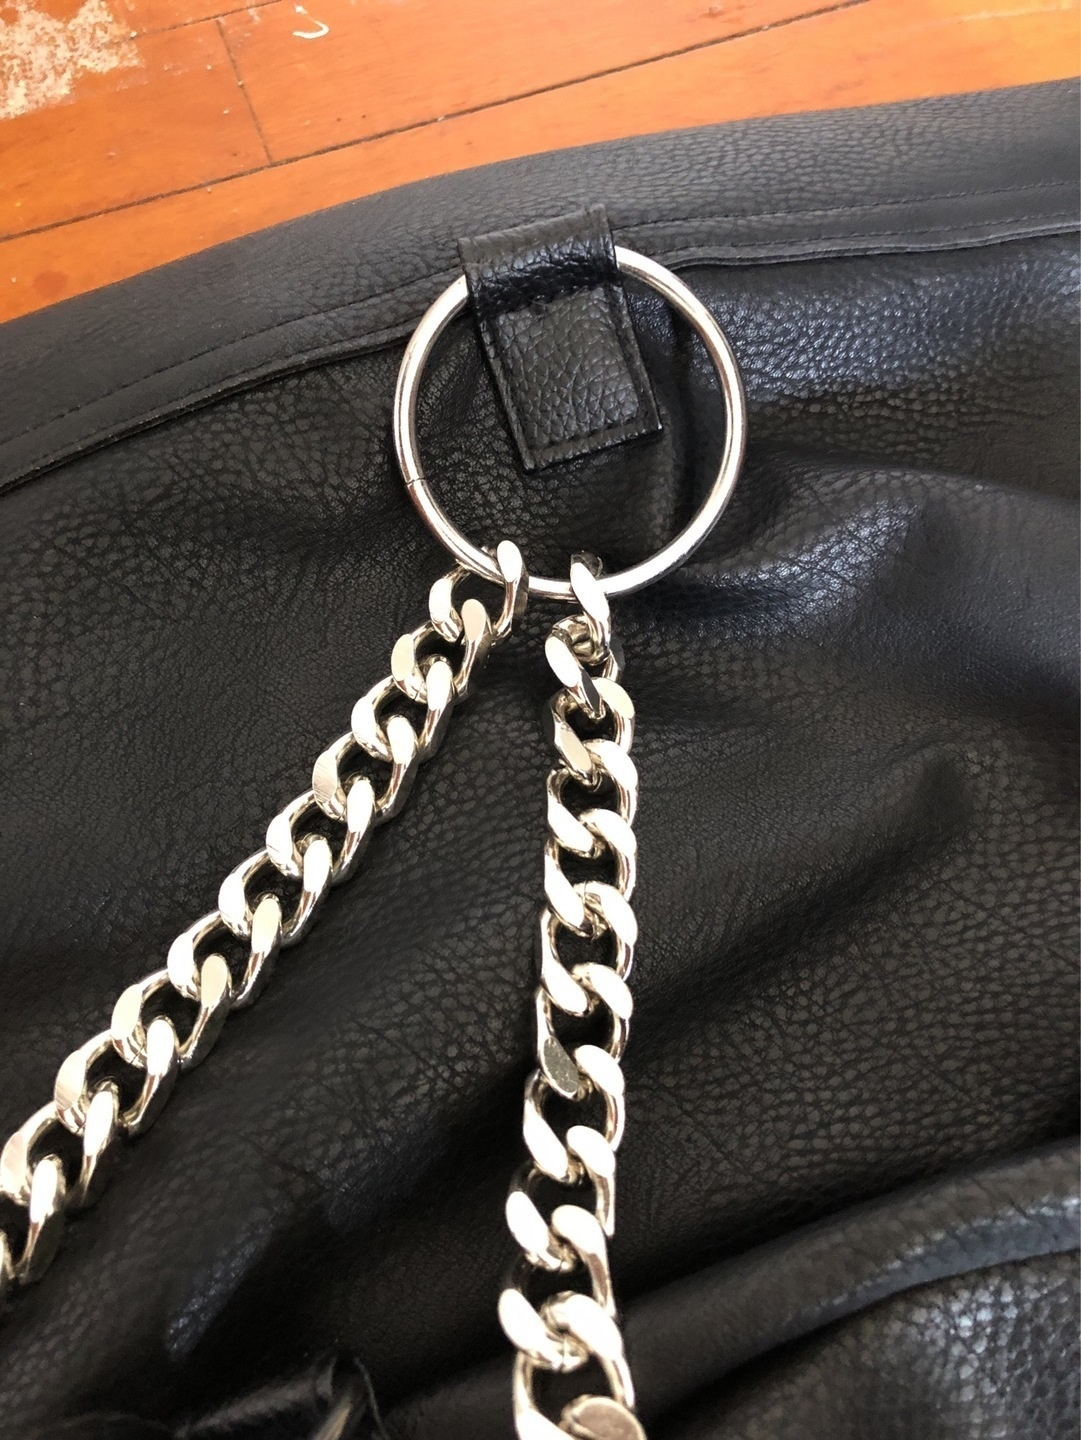 Women's bags & purses - MISSGUIDED photo 3